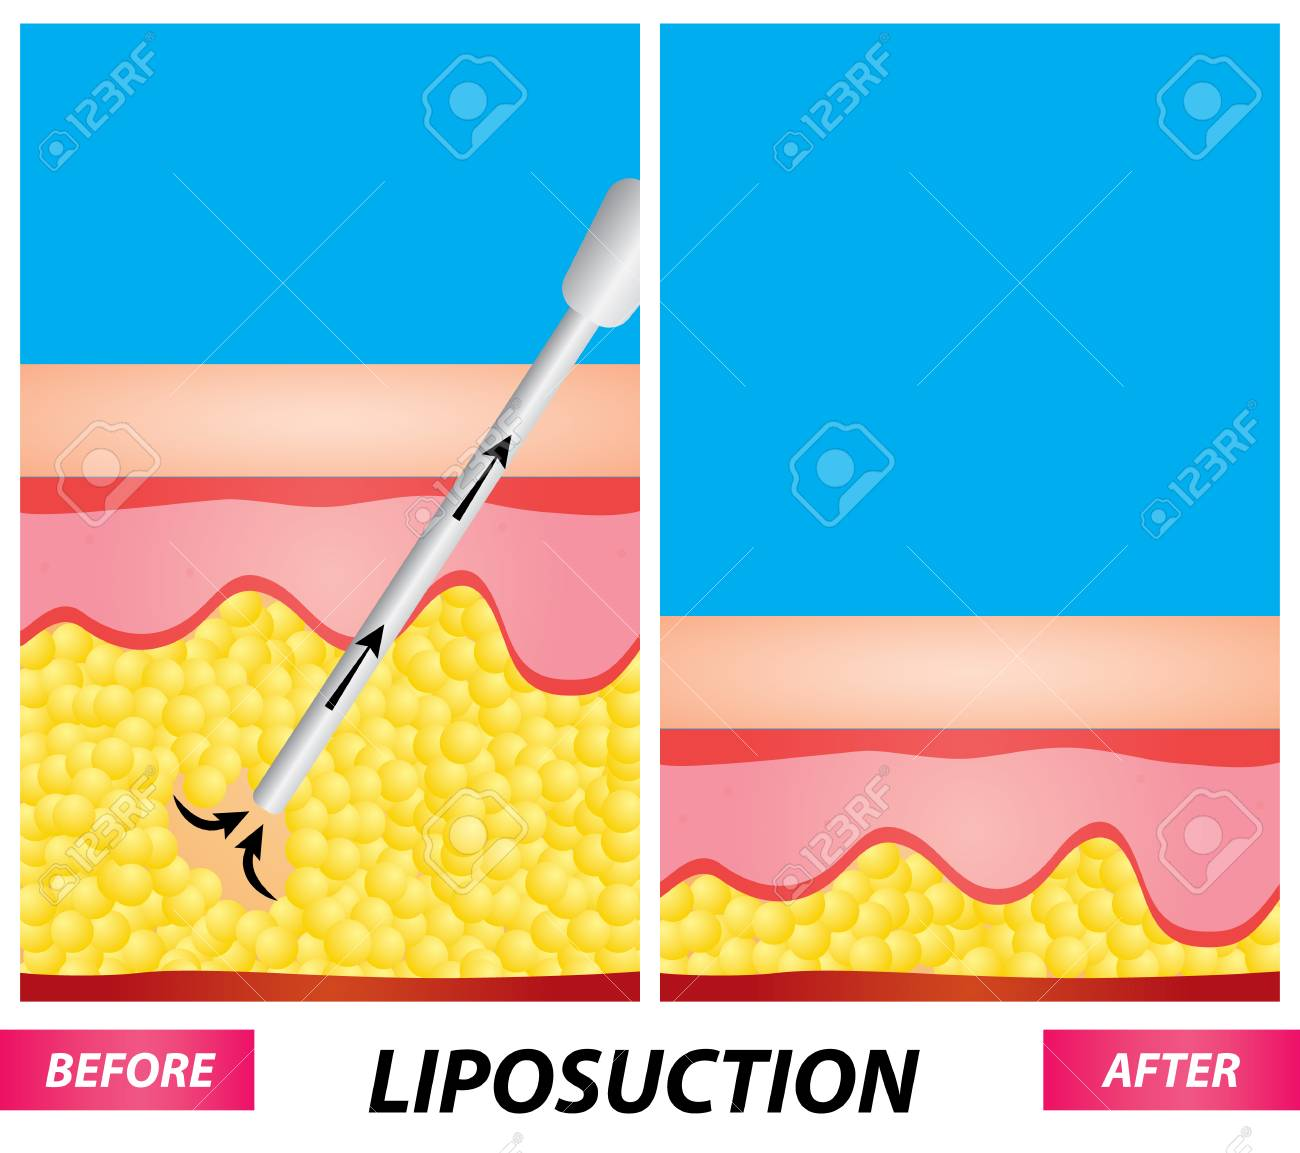 hight resolution of liposuction fat surgery diagram before and after vector illustration stock vector 100735731